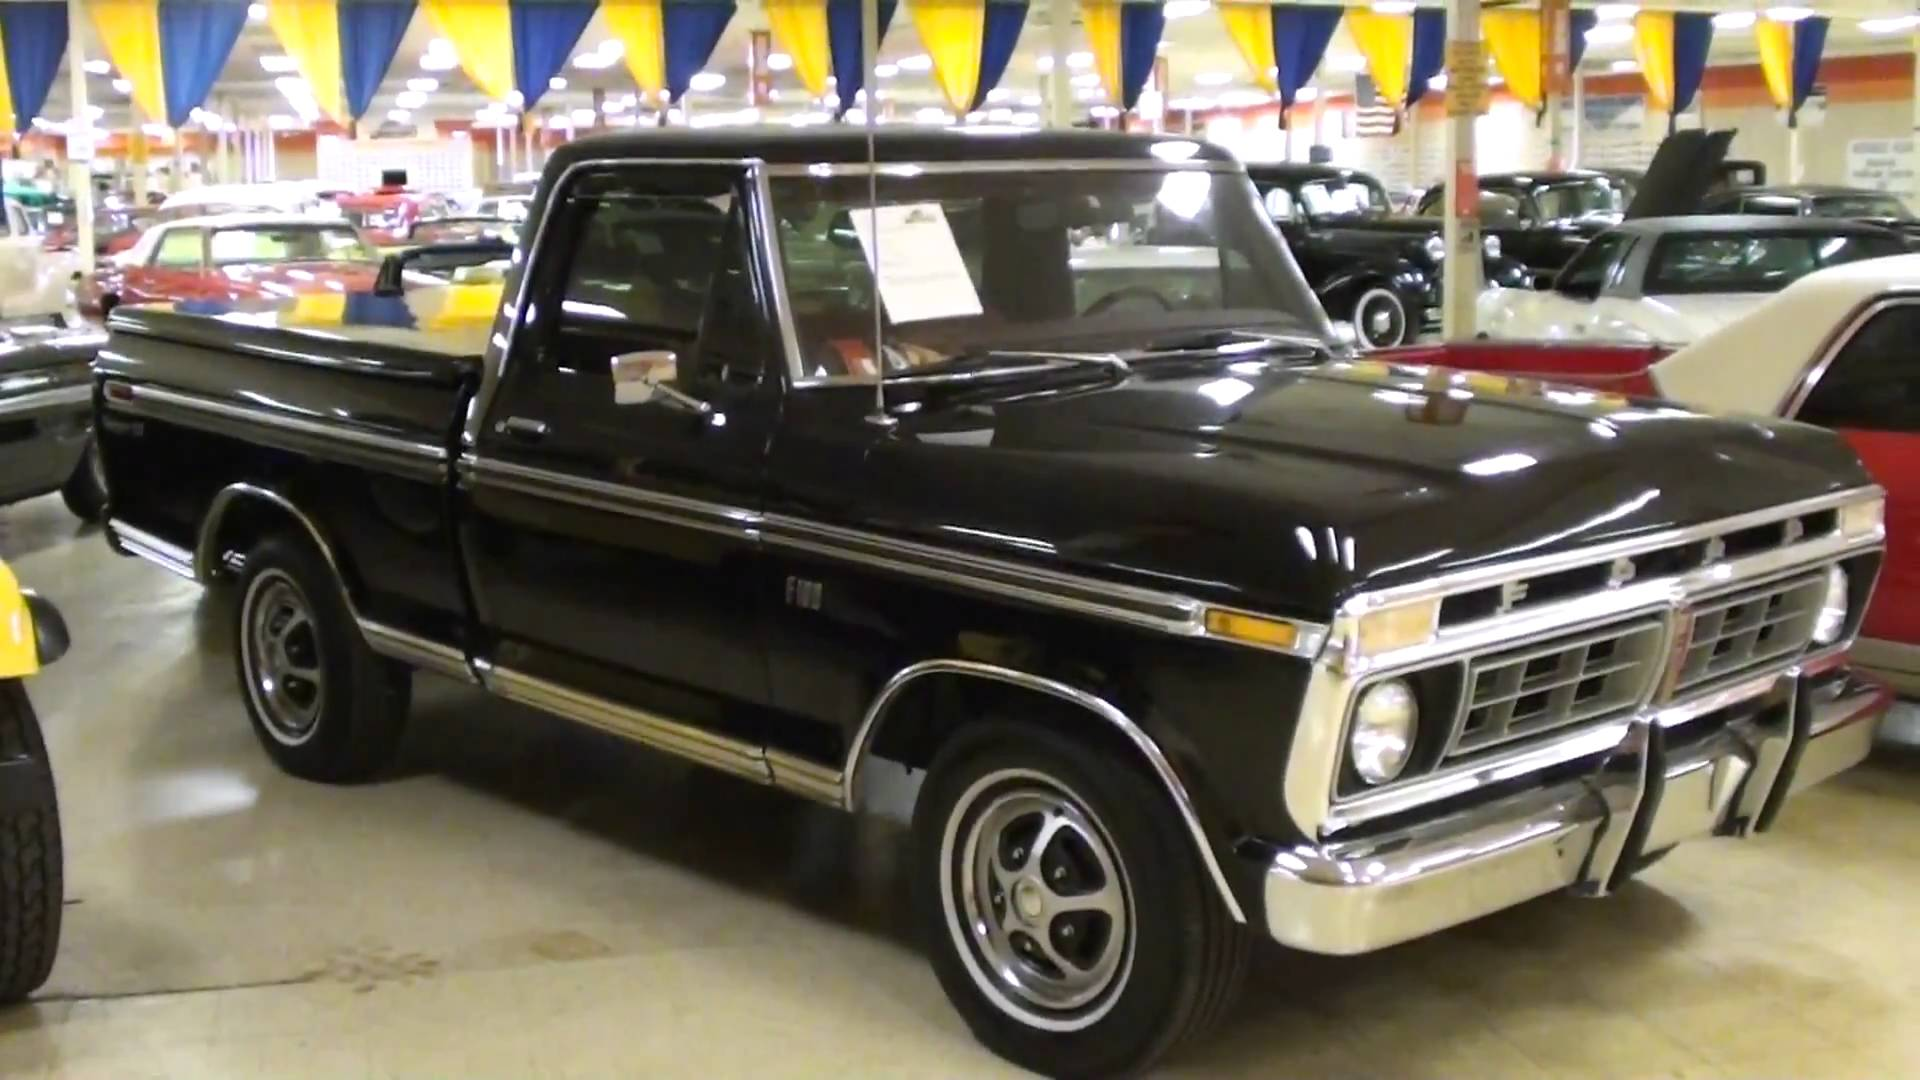 Ford f100 1976 4 ford f100 1976 4